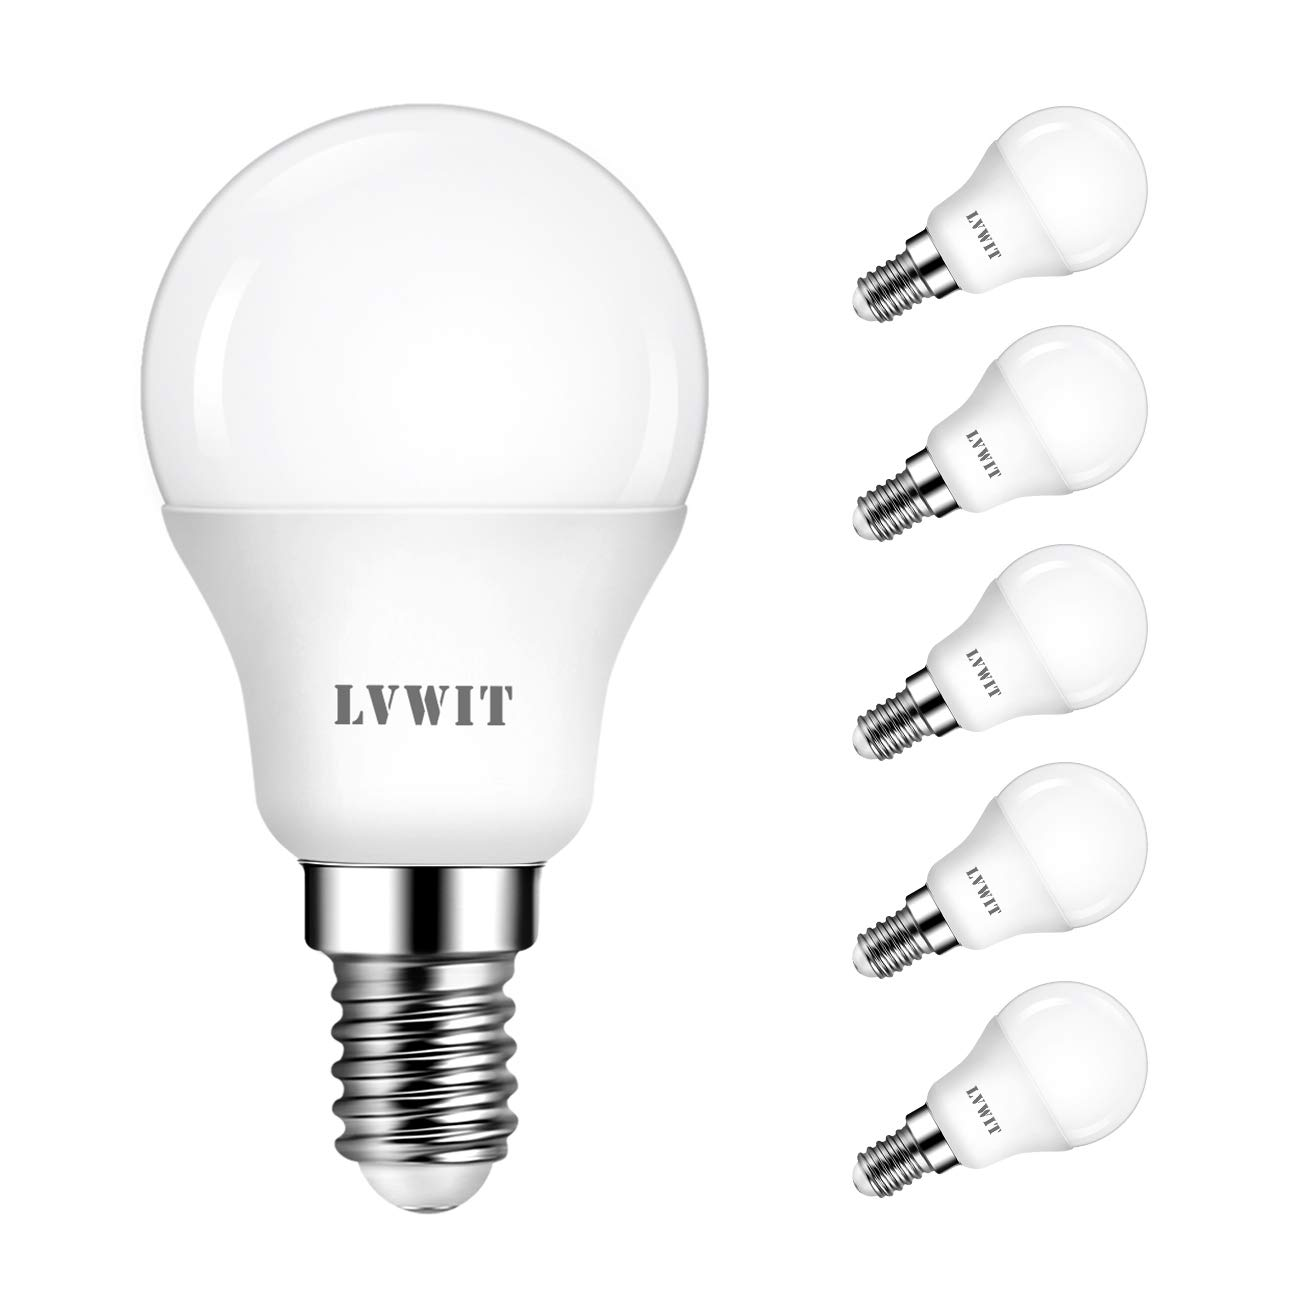 LVWIT Bombillas LED P45 E14 (Casquillo Fino) - 4.5W equivalente a 40W, 350 lúmenes, Color blanco cálido 2700K, No regulable - Pack de 6 Unidades.